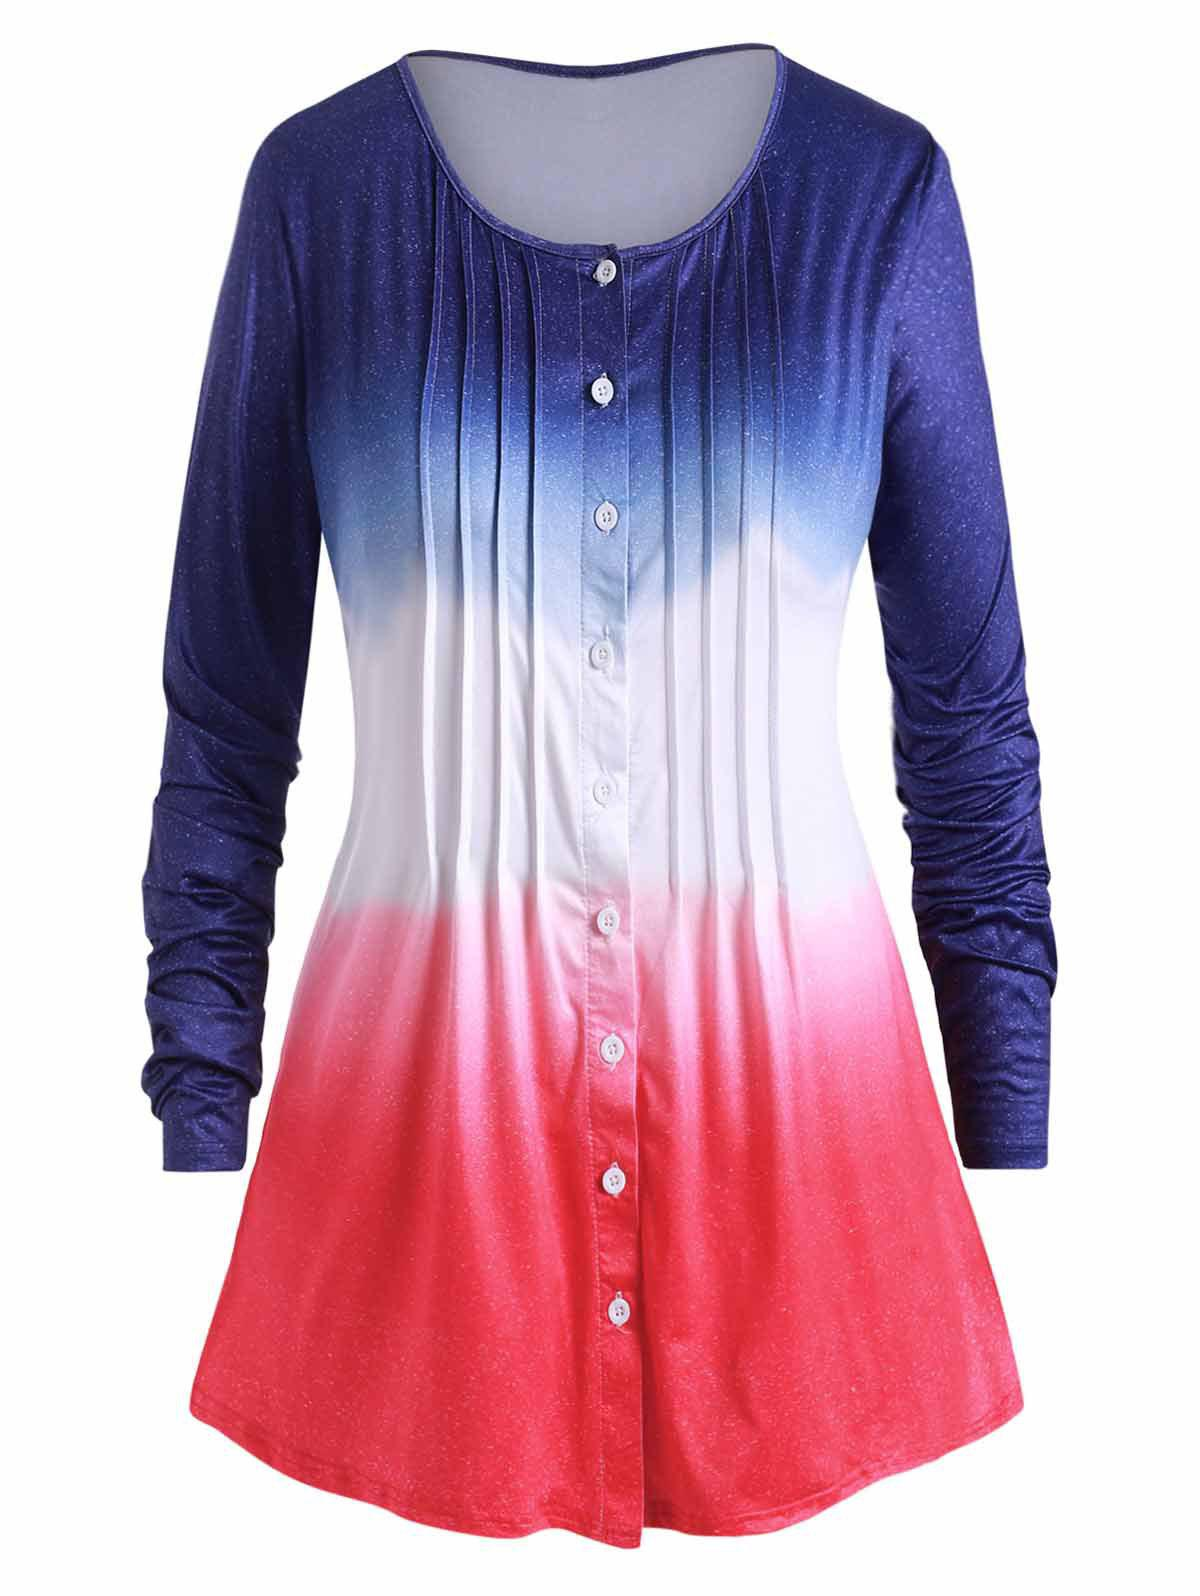 Ombre Pleated Button Up Plus Size Long Sleeve Top - PEACOCK BLUE L